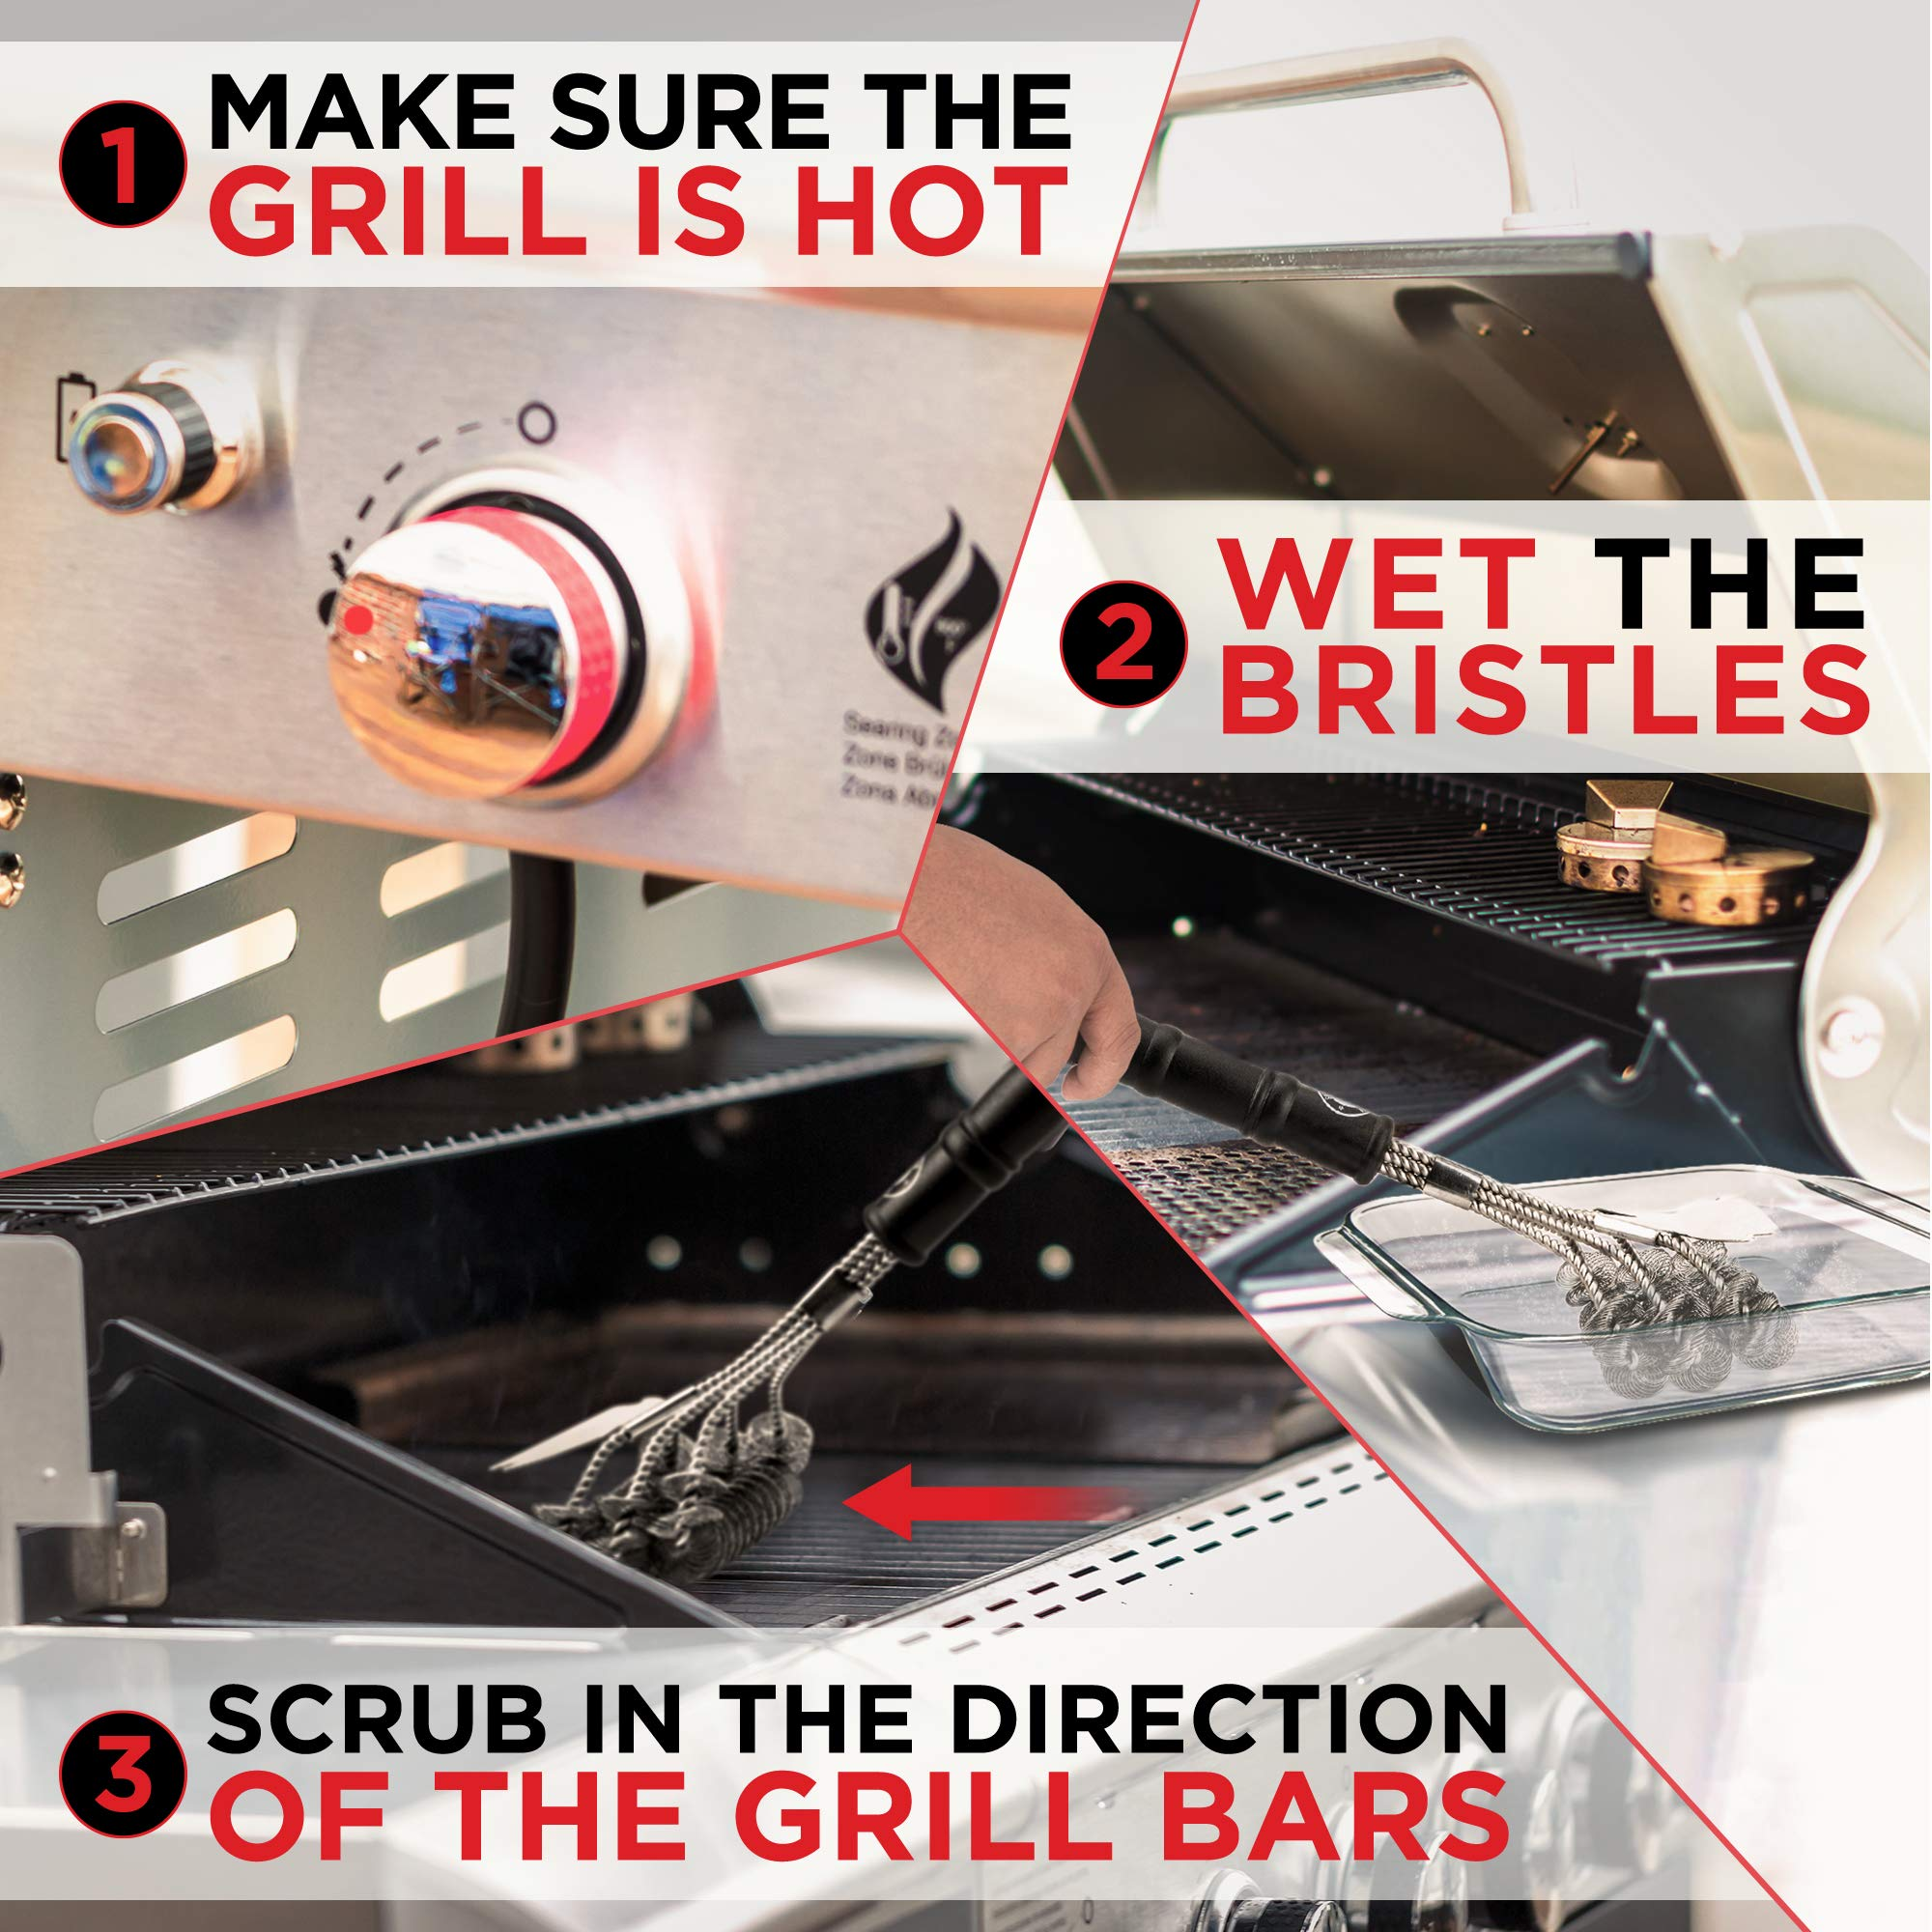 Alpha Grillers Grill Brush Bristle Free. Best Safe BBQ Cleaner with Extra Wide Scraper. Perfect 18 Inch Stainless Steel Tools for All Grill Types, Including Weber. Ideal Barbecue Accessories by Alpha Grillers (Image #6)